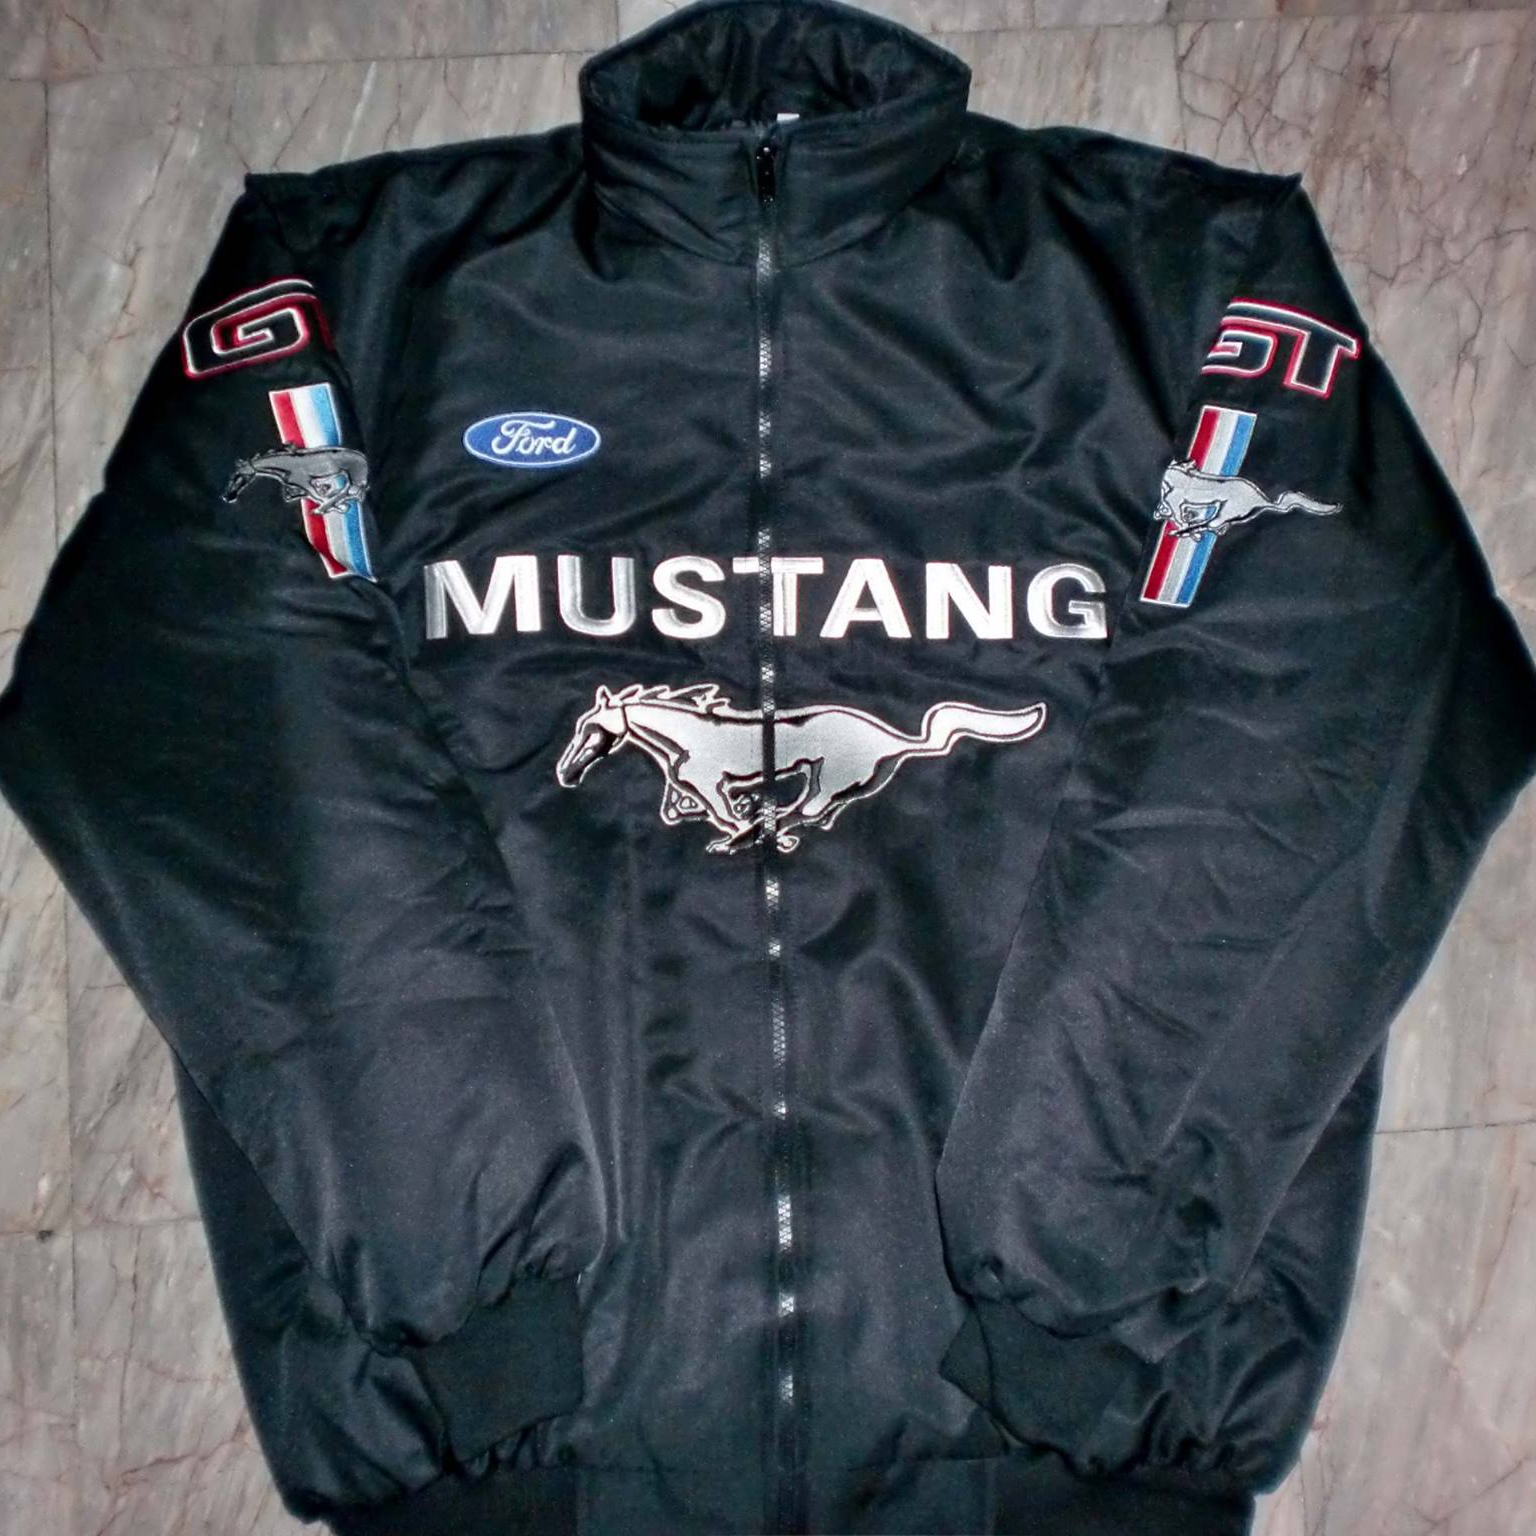 Ford Mustang Gt Jackets